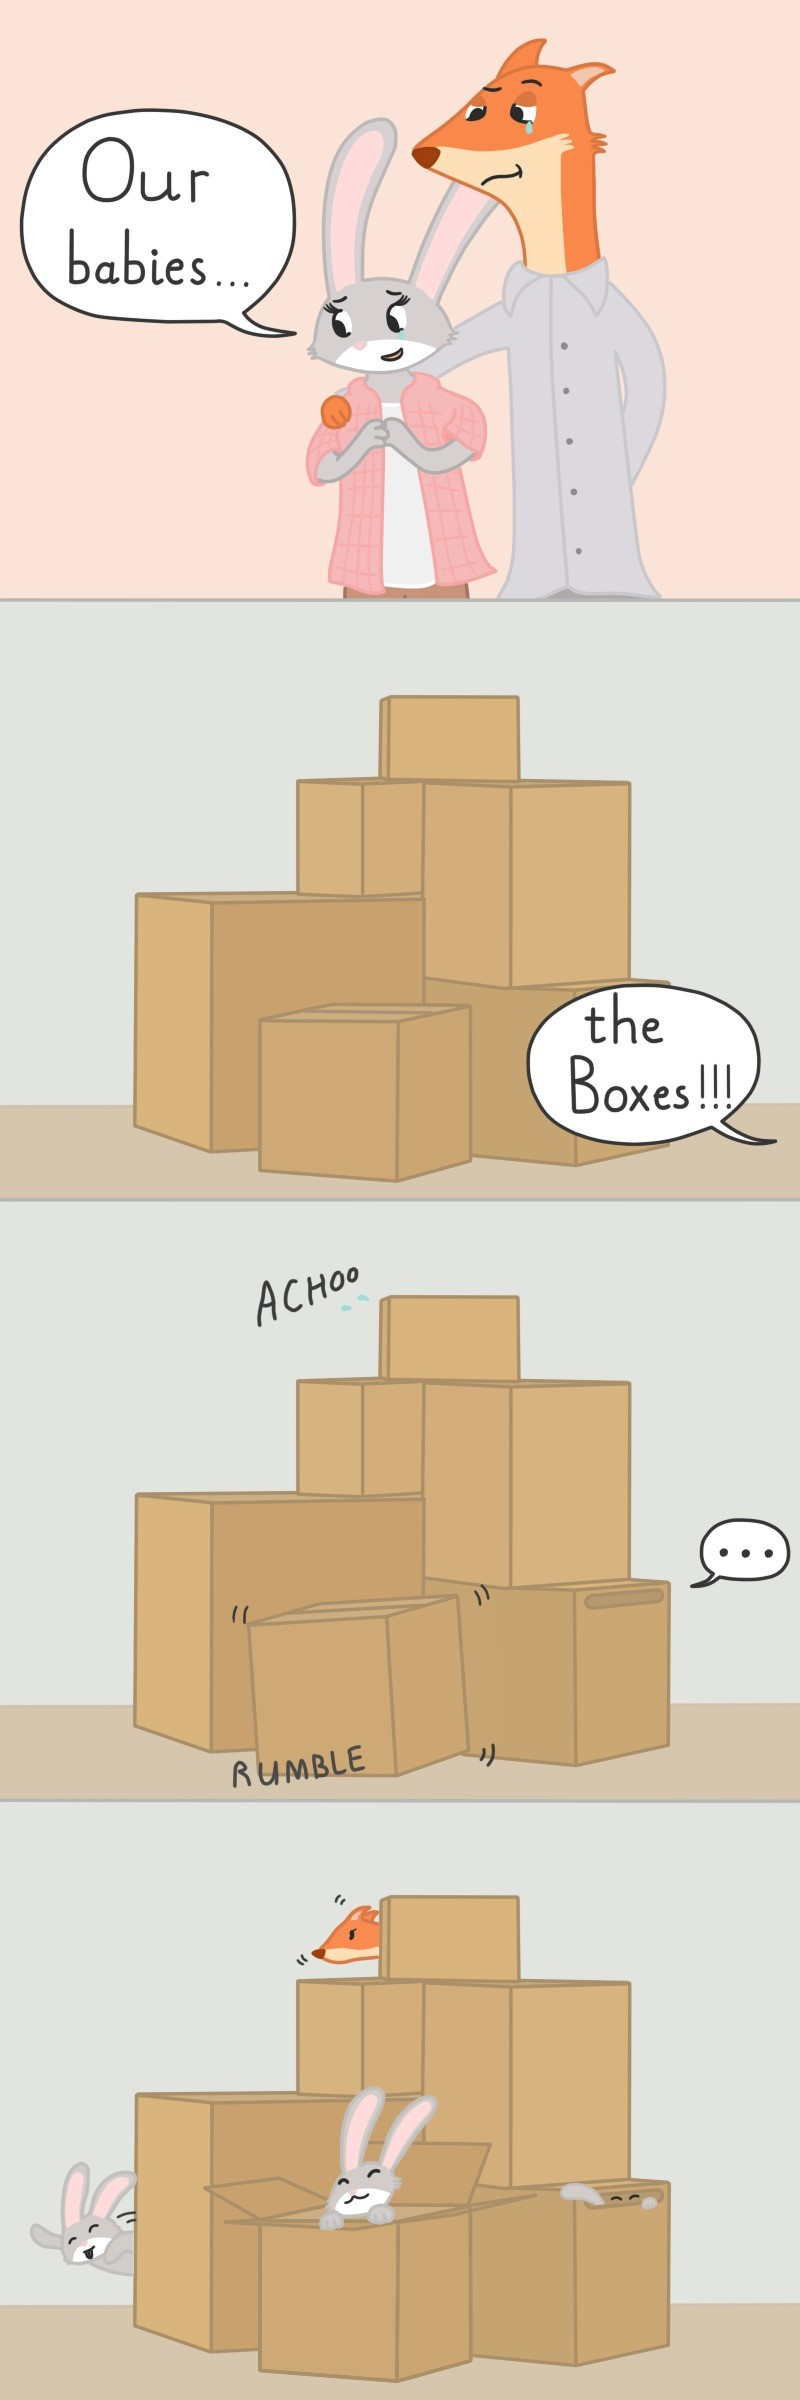 The boxes!!!. Bad jokes run in the family, it seems!.